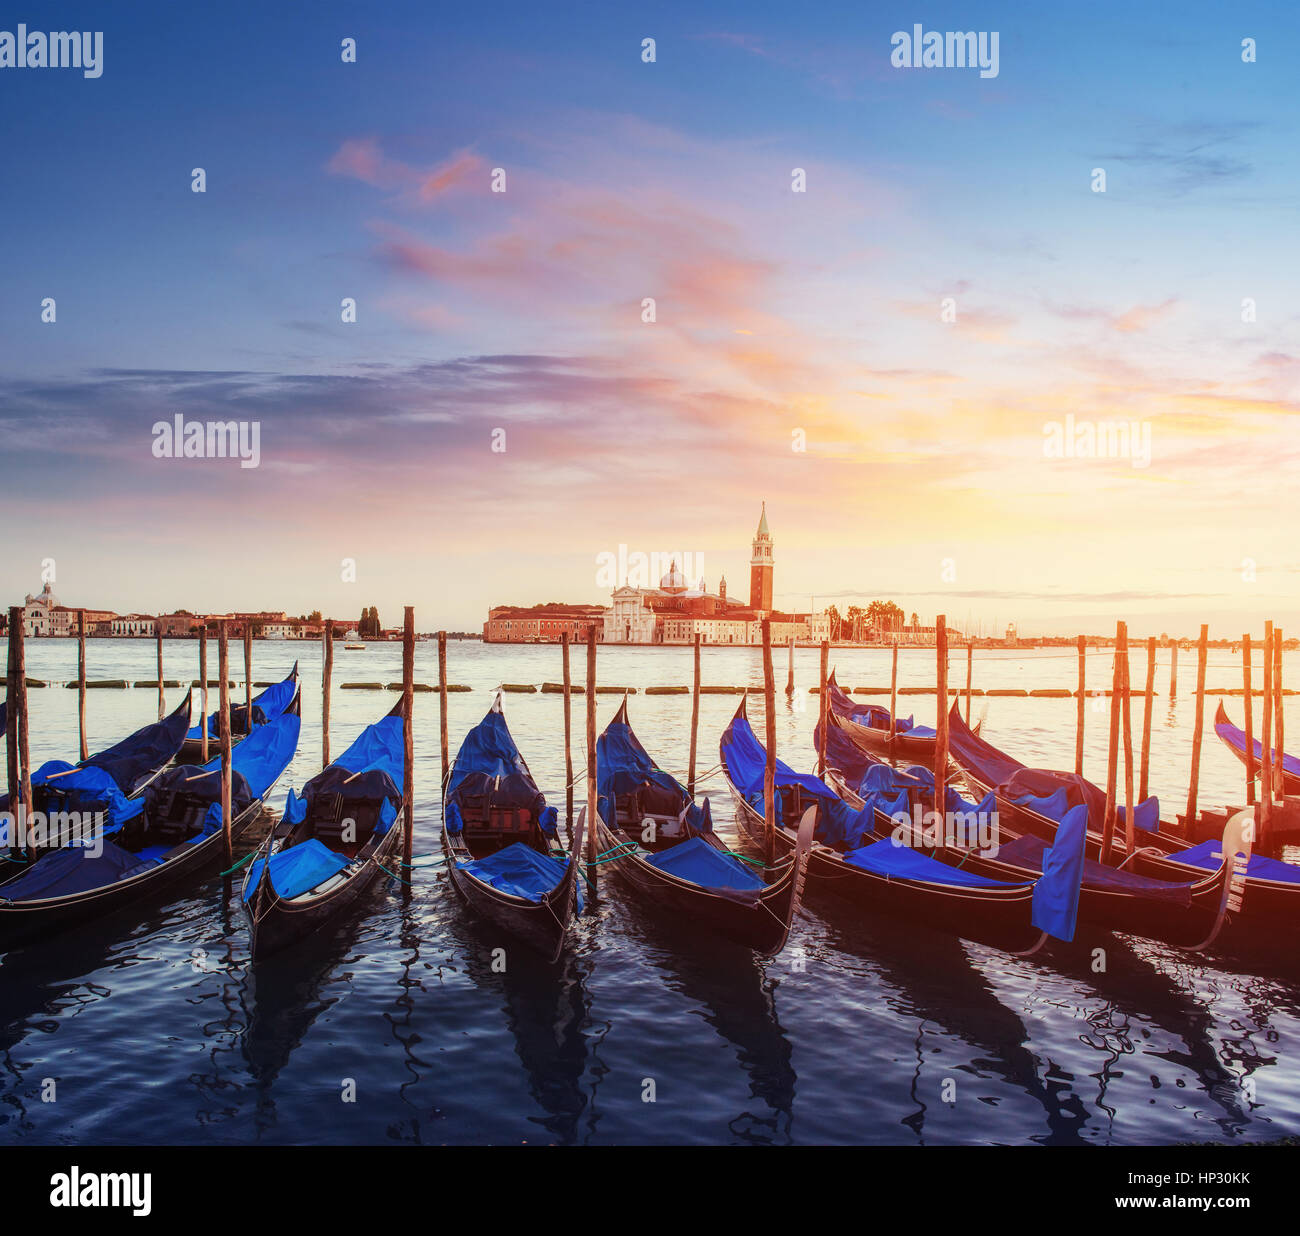 City landscape. Fantastic views of the gondola at sunset - Stock Image